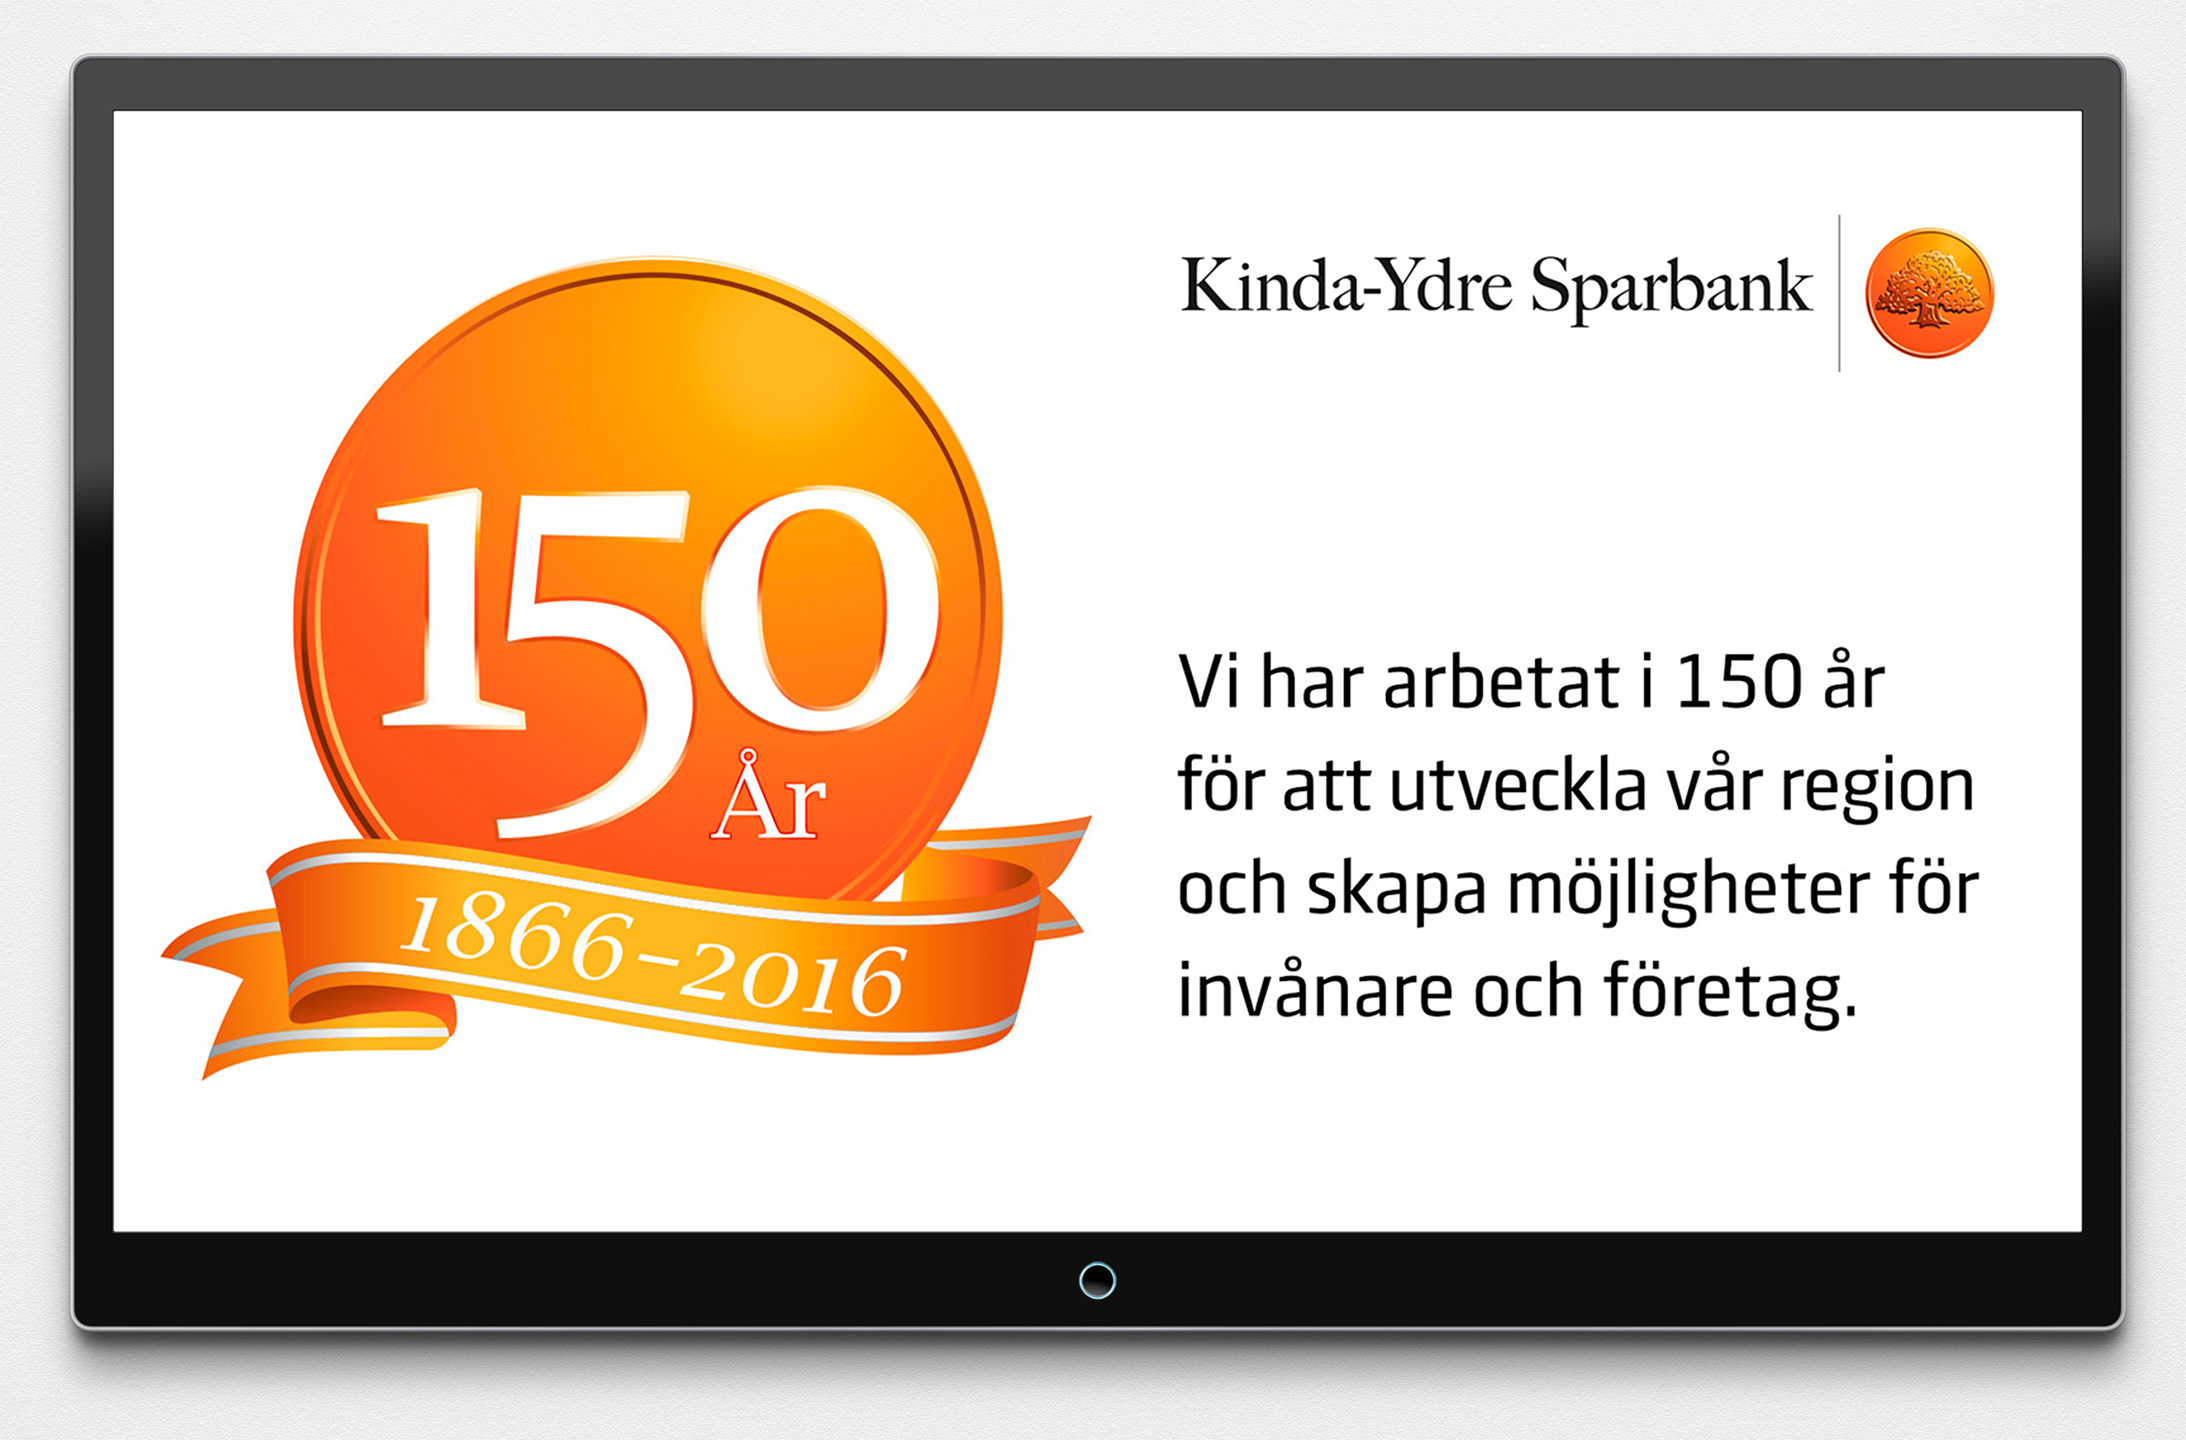 Kinda Ydre Sparbank 150 år - TV